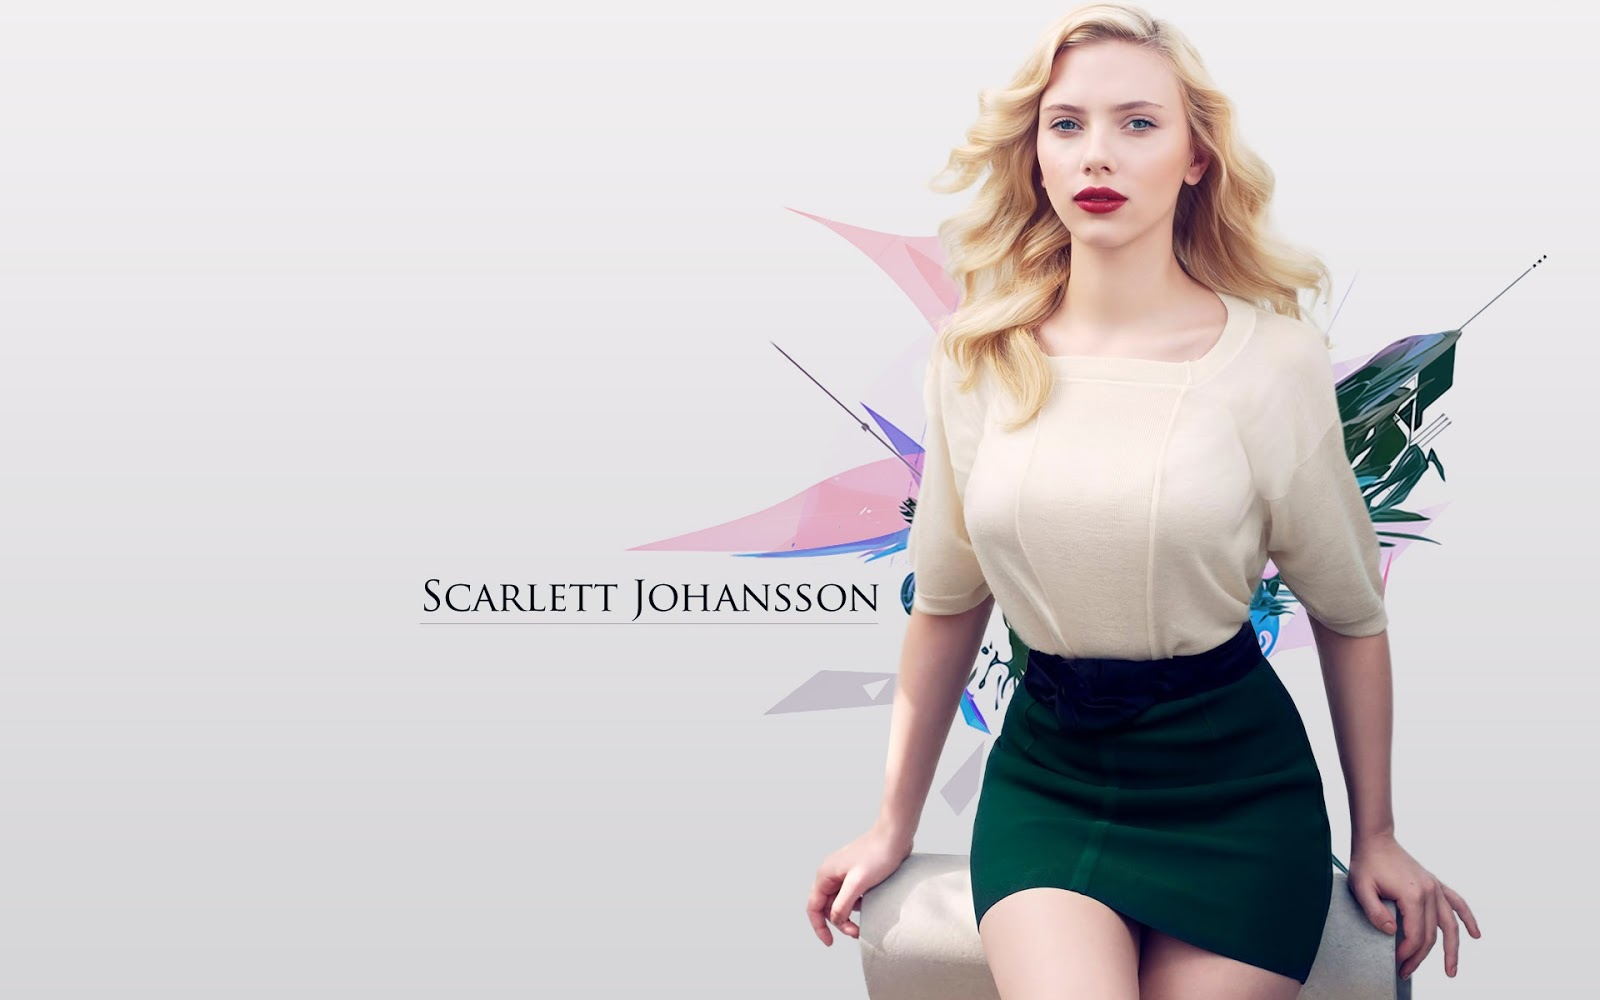 scarlett johansson hot hd - photo #34